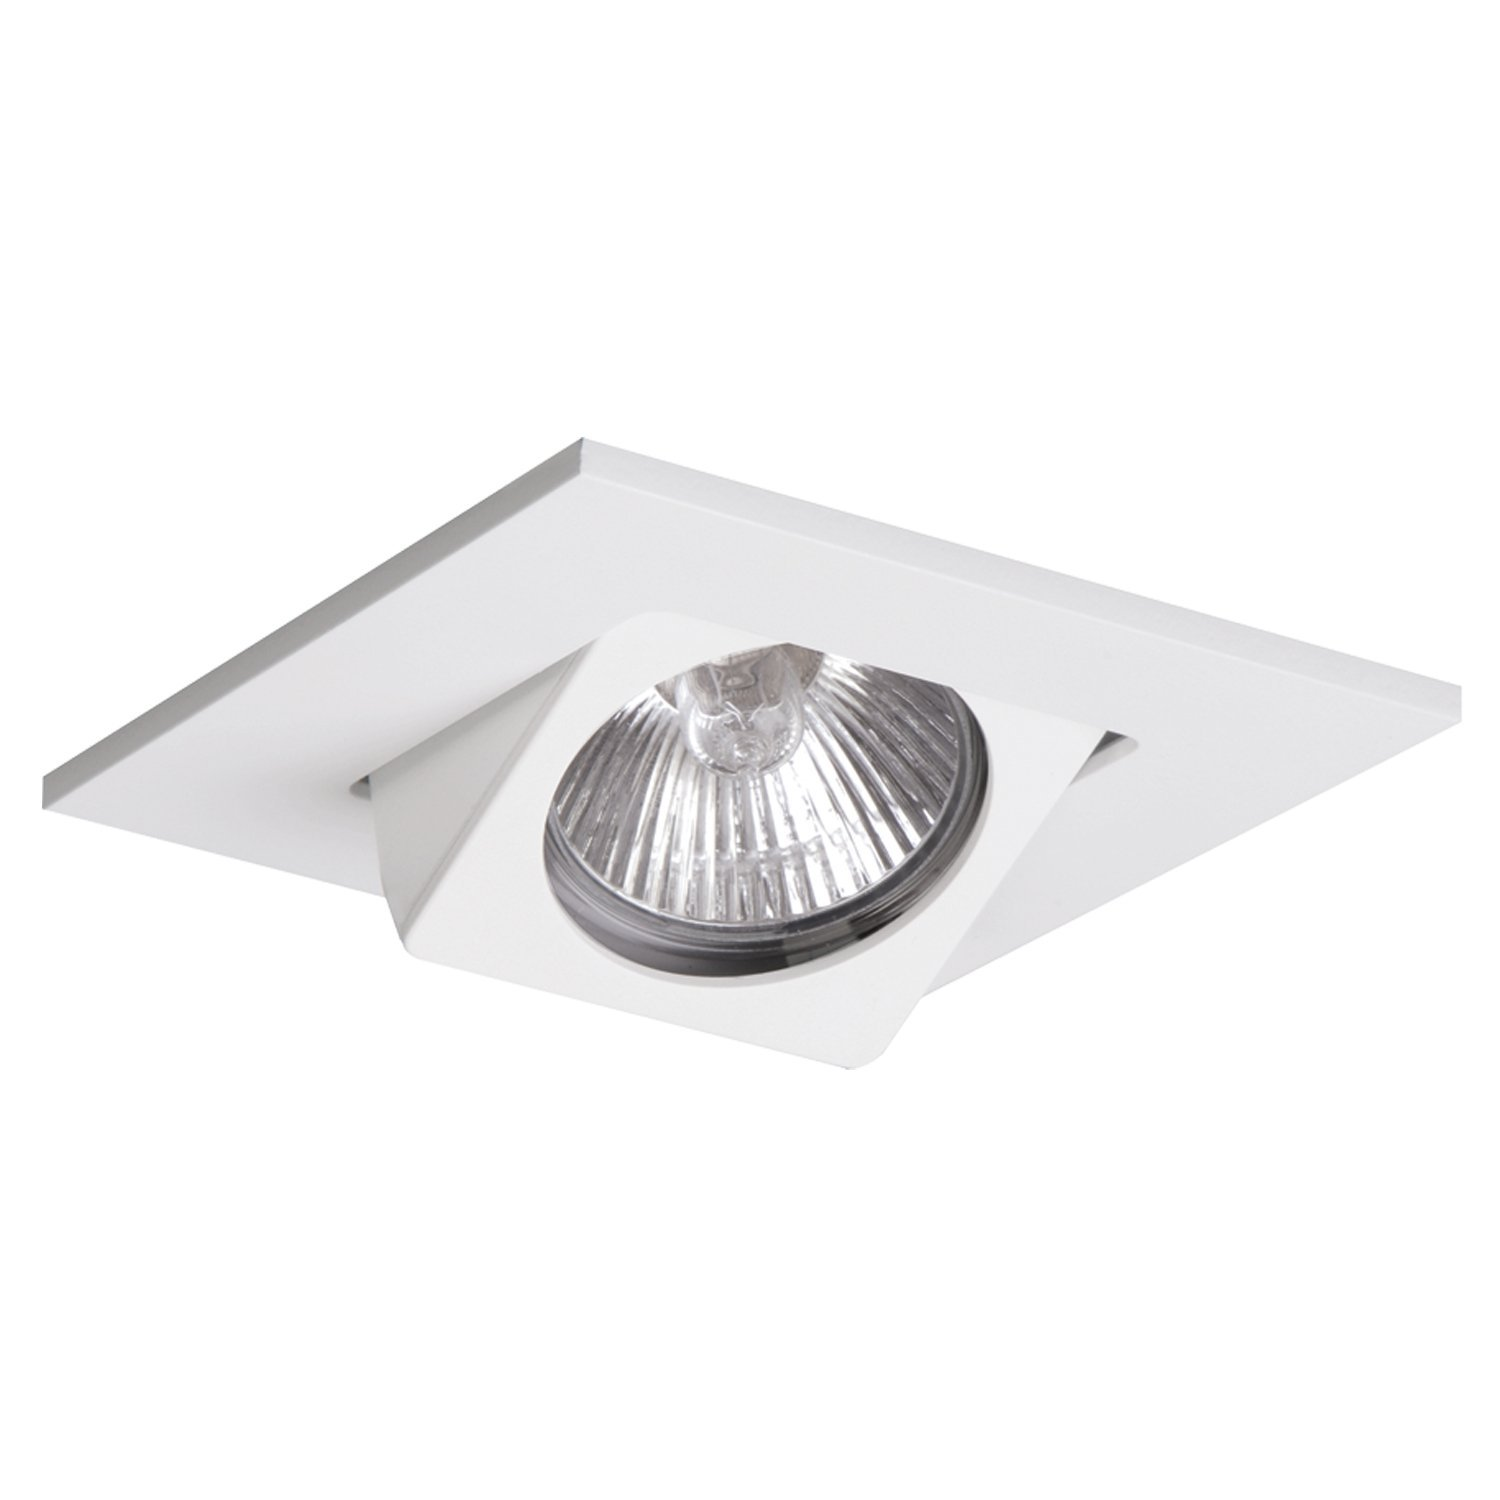 Are Led Ceiling Lights Any Good : Led lighting fixtures home cheap sample of exterior